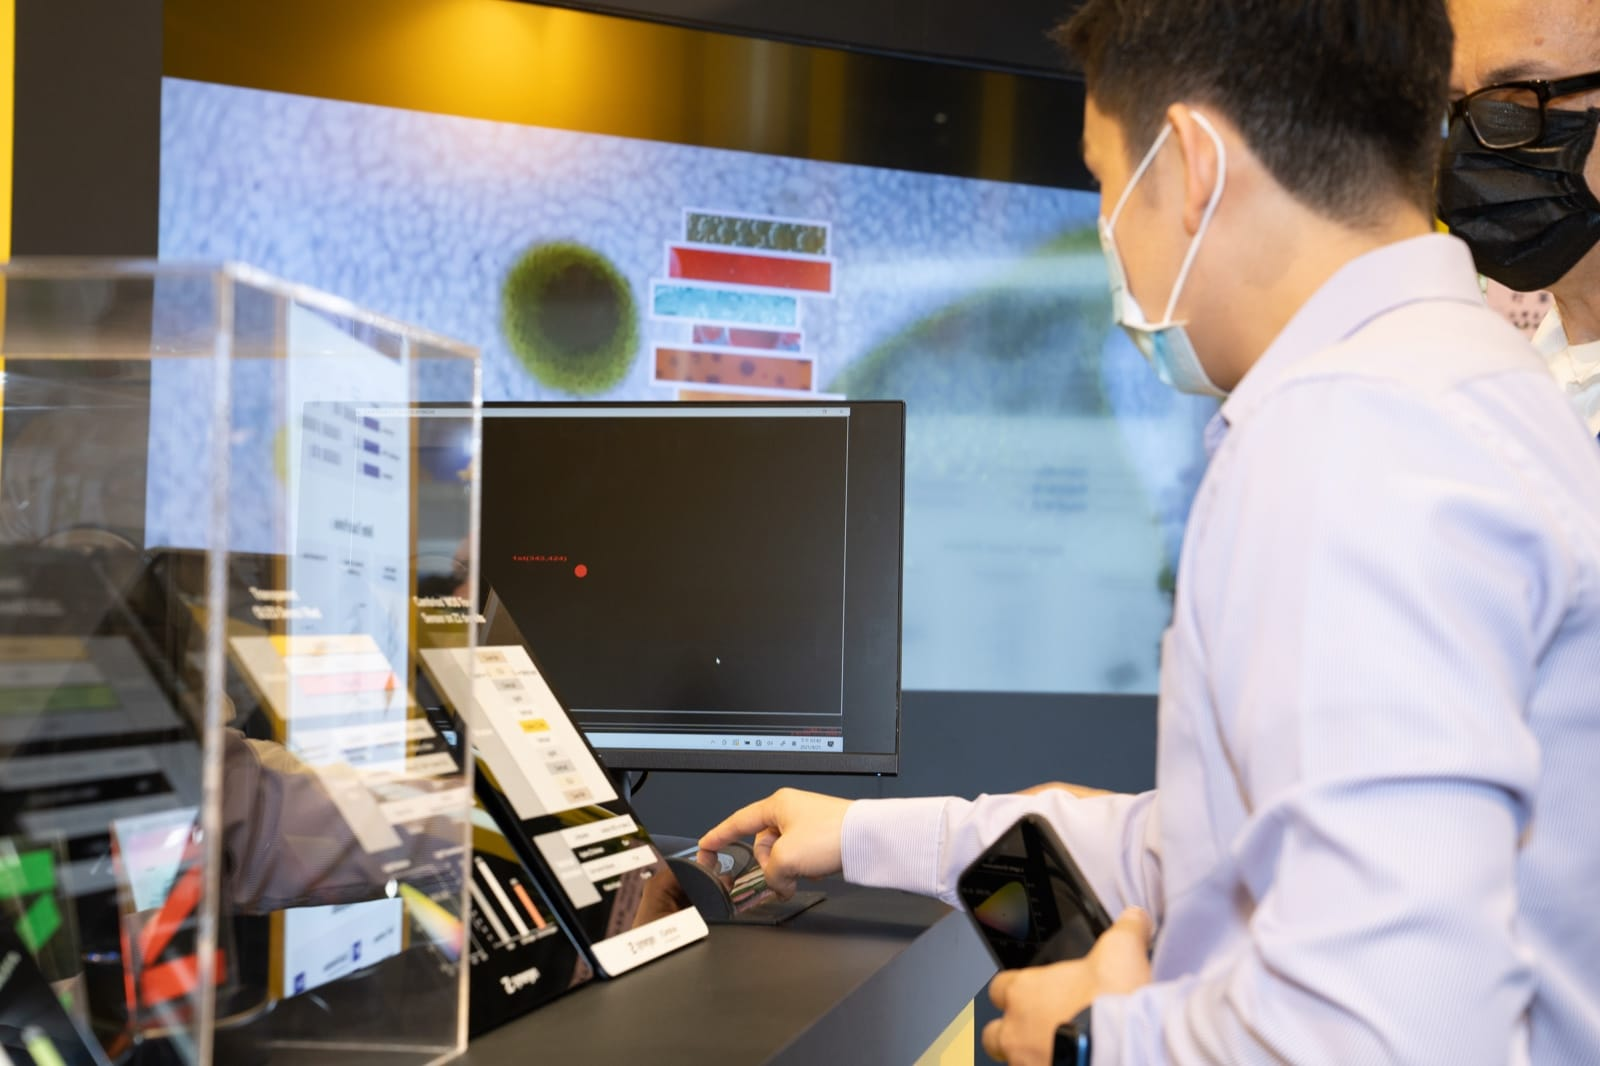 A visitor interacts with a prototype Hyaline touch sensor display.